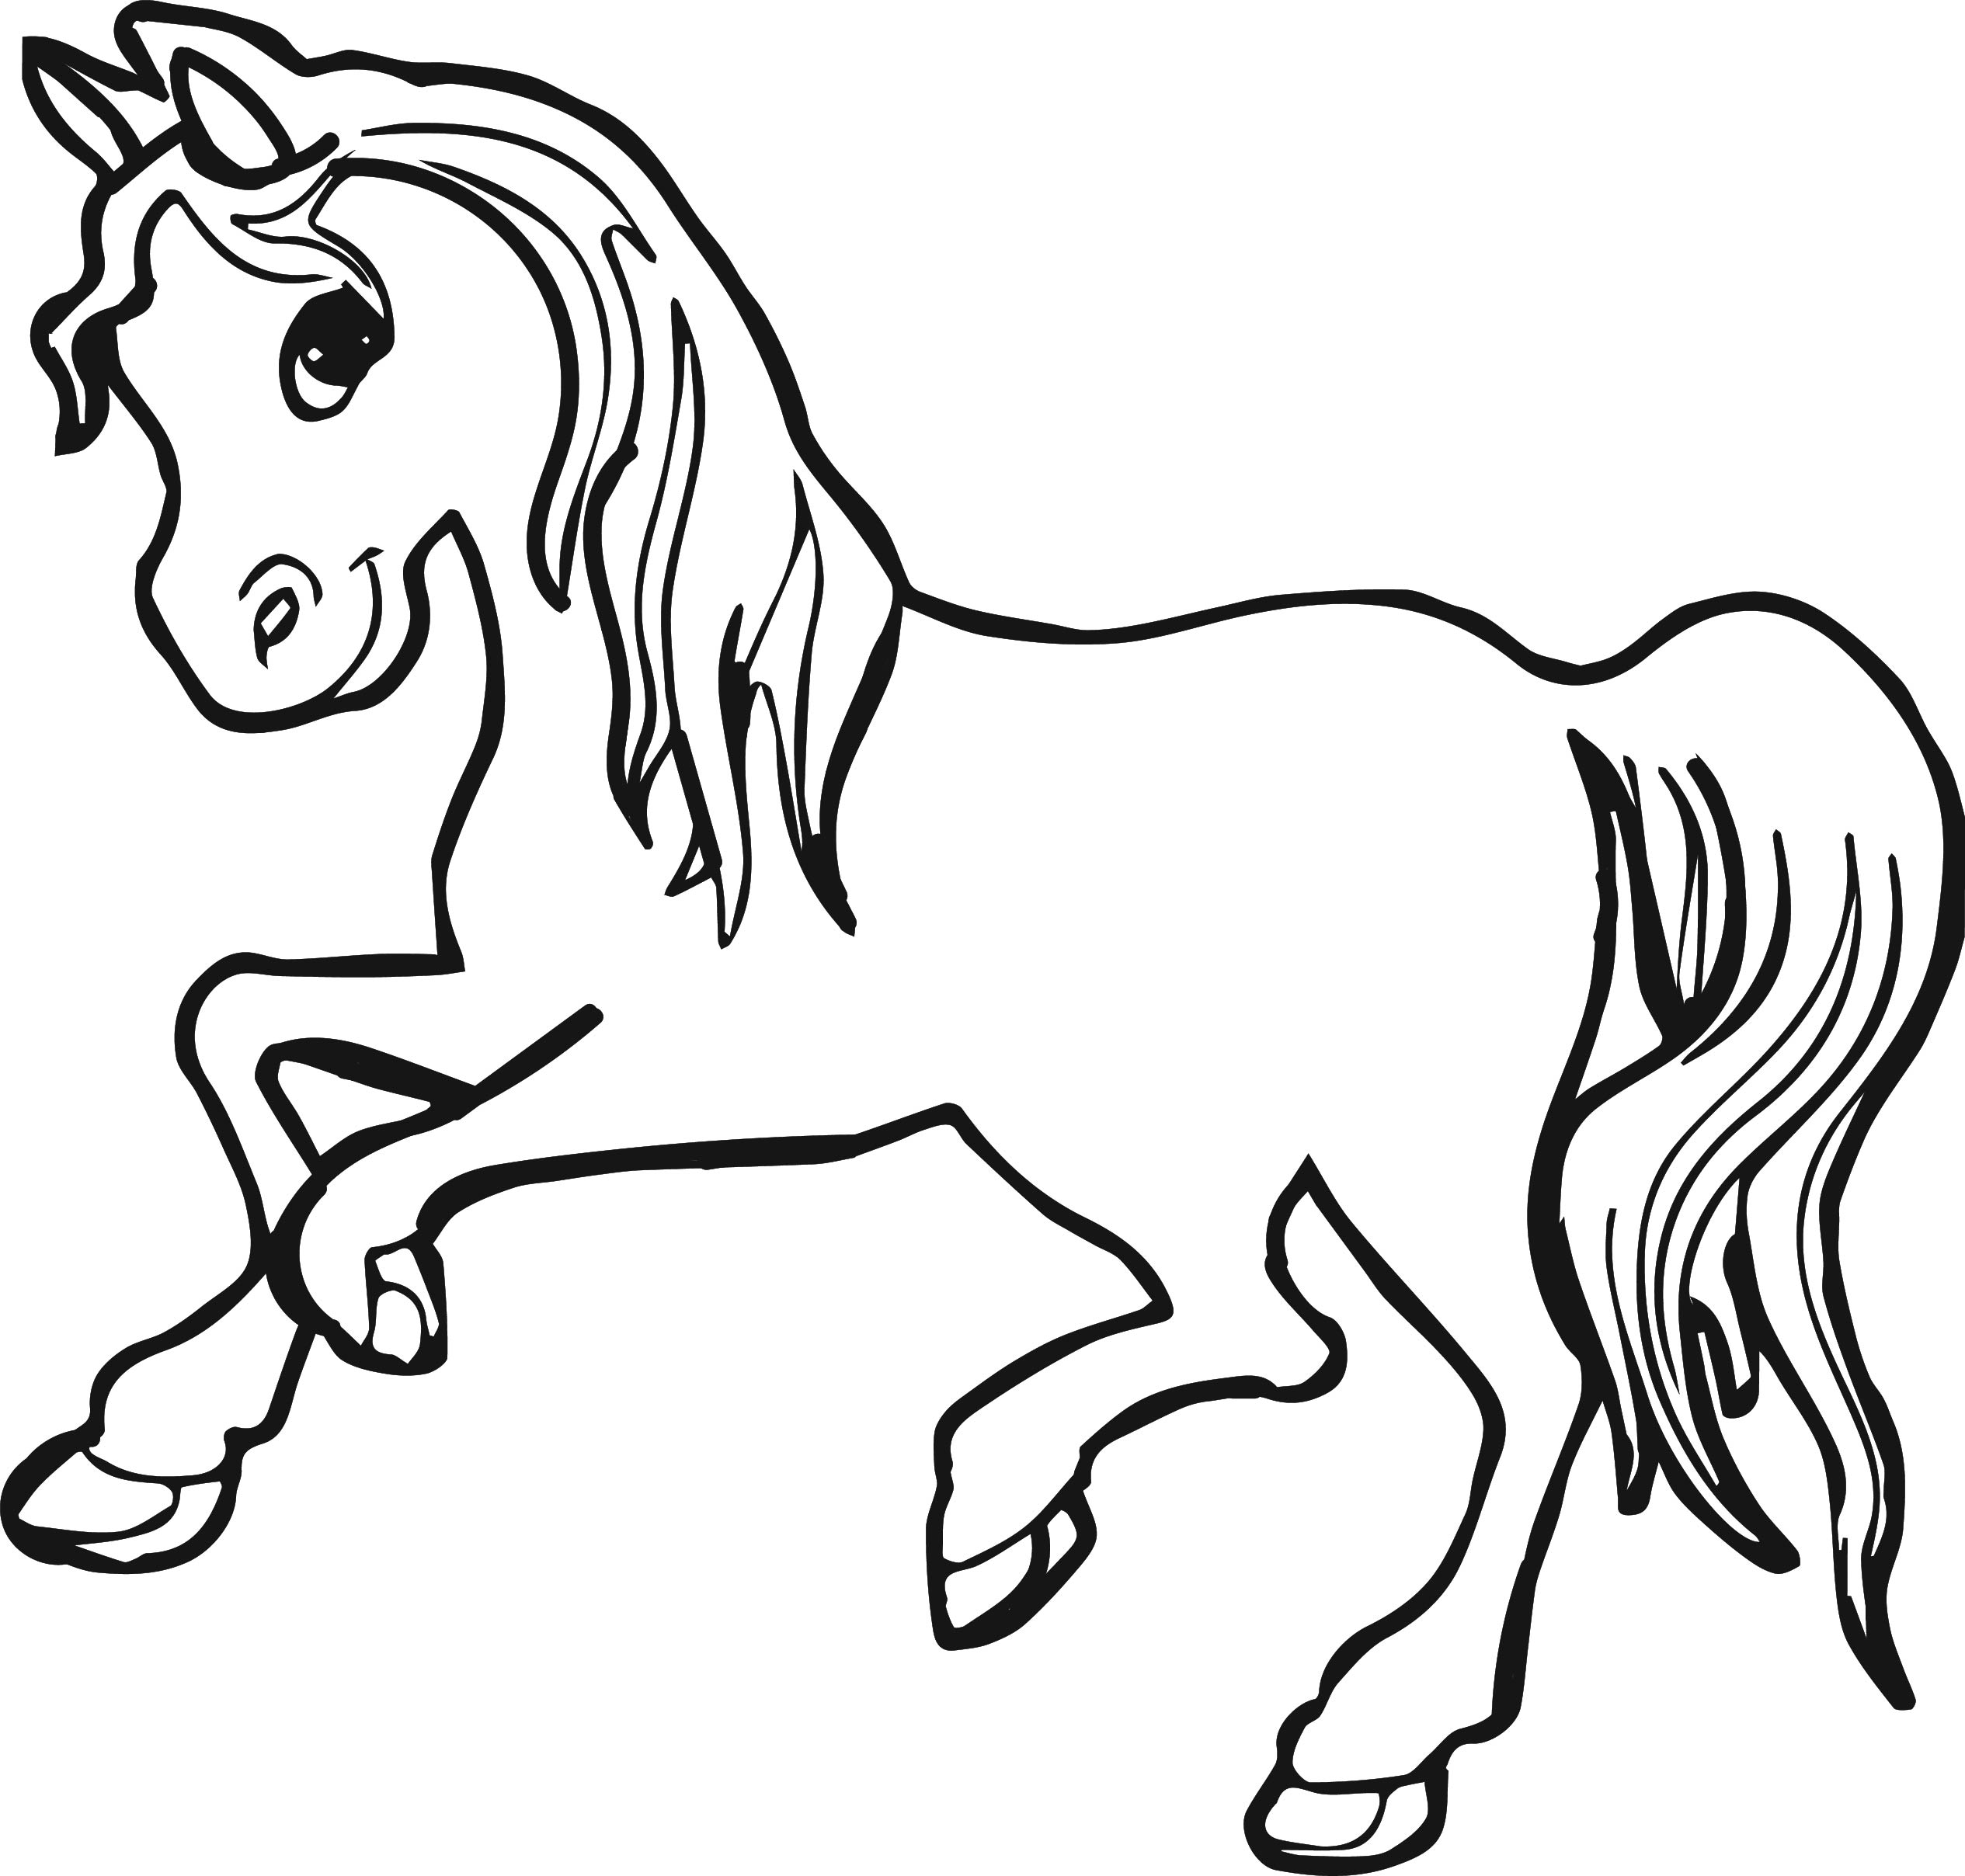 coloring images horse horse free to color for children trotting horse horses images coloring horse